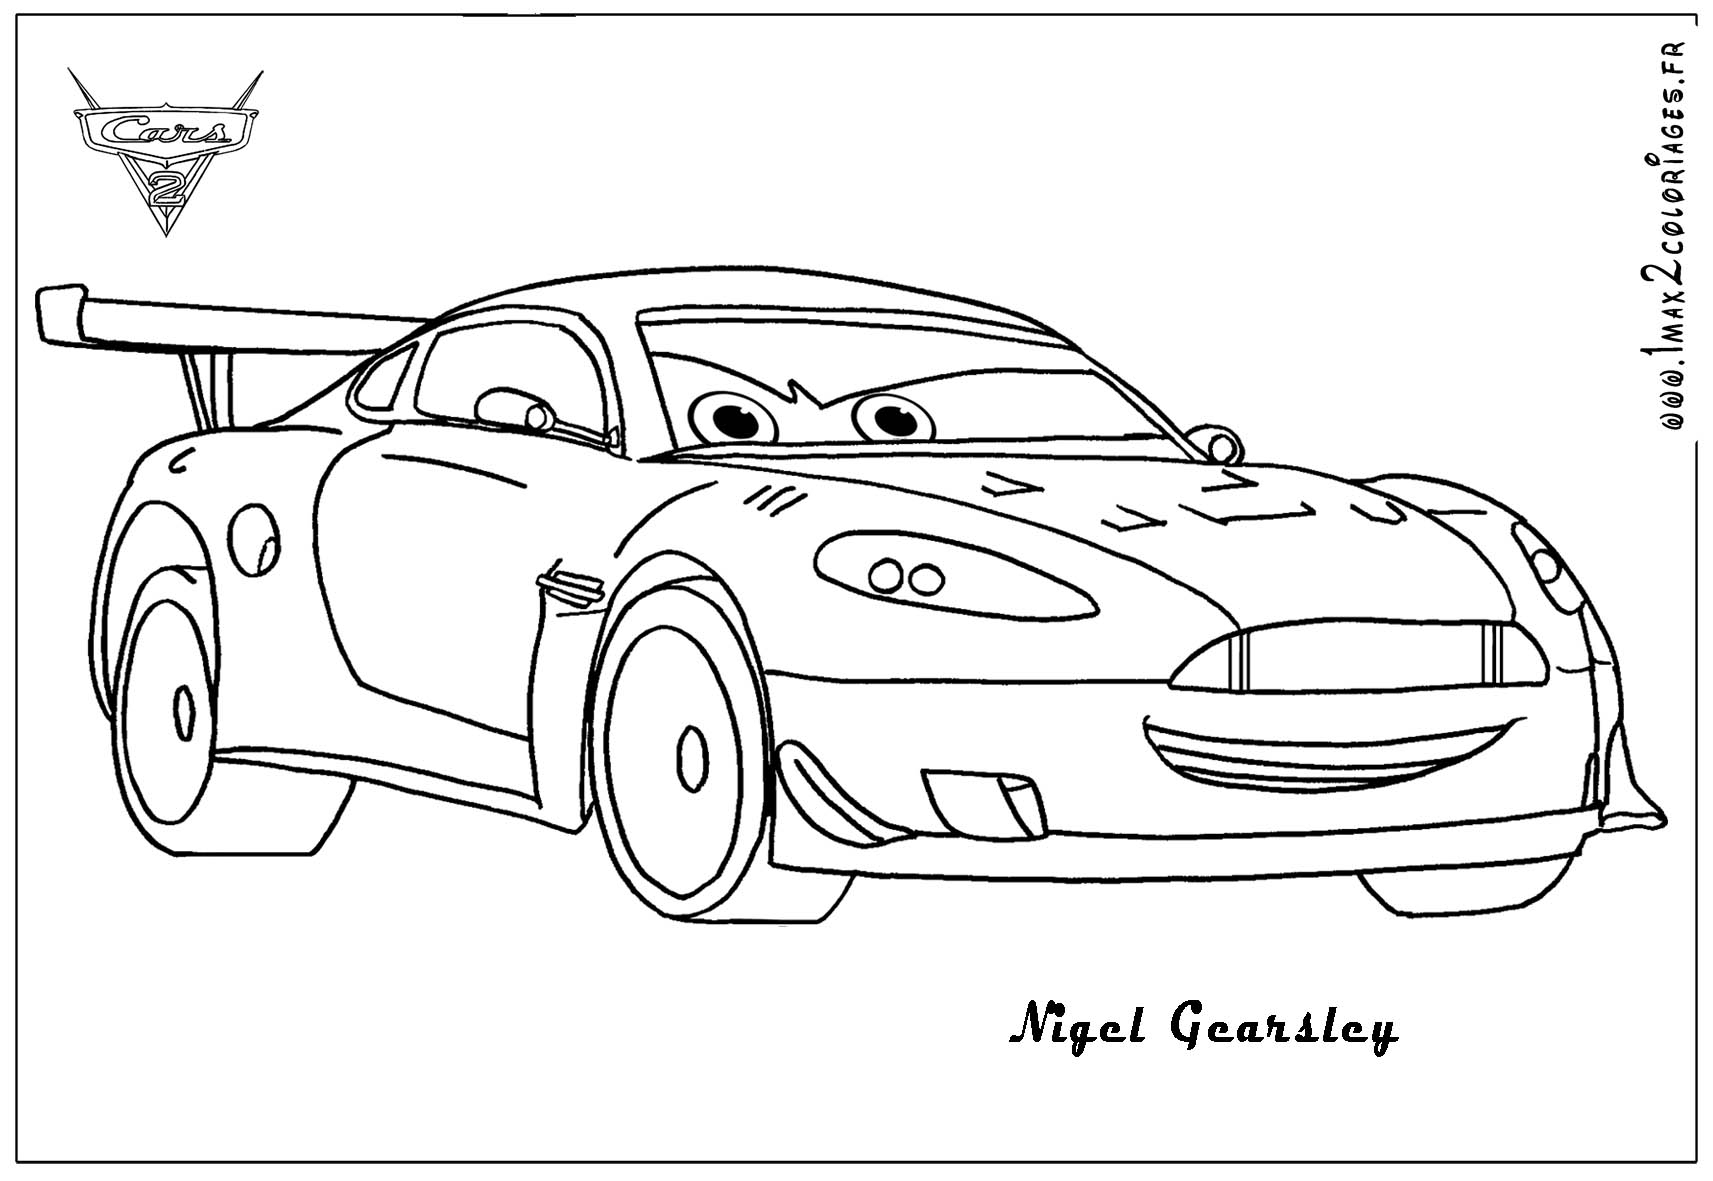 Coloring Pages Cars 2 to Print 19q - To print for your project